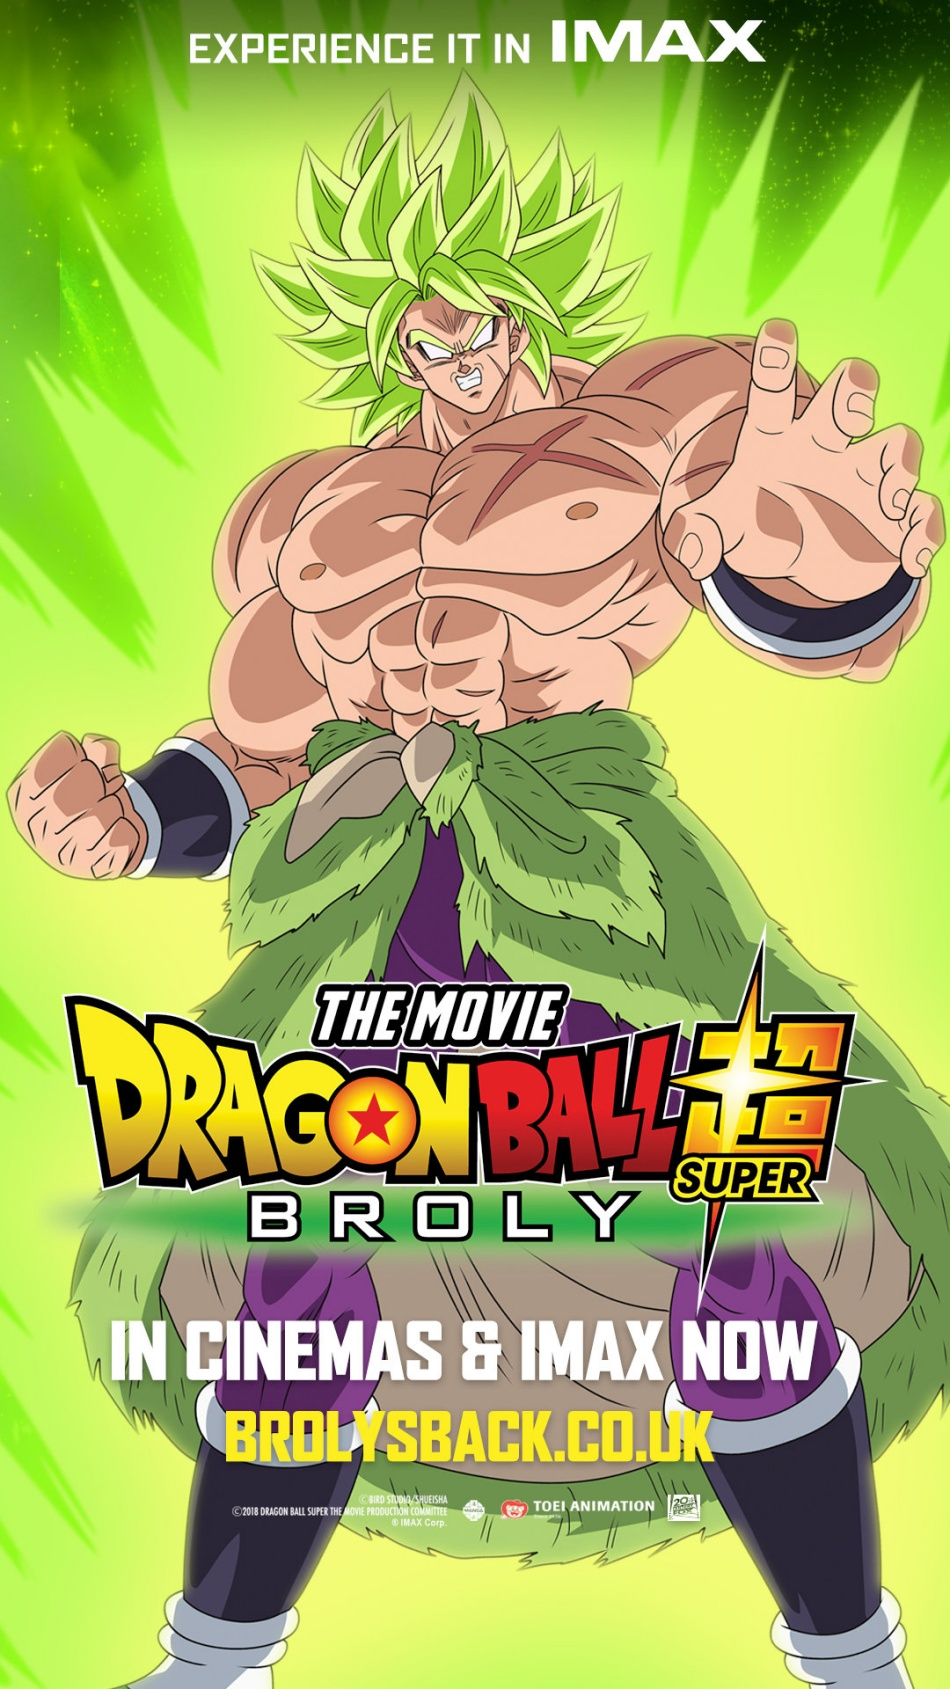 Dragon Ball Super: Broly IMAX